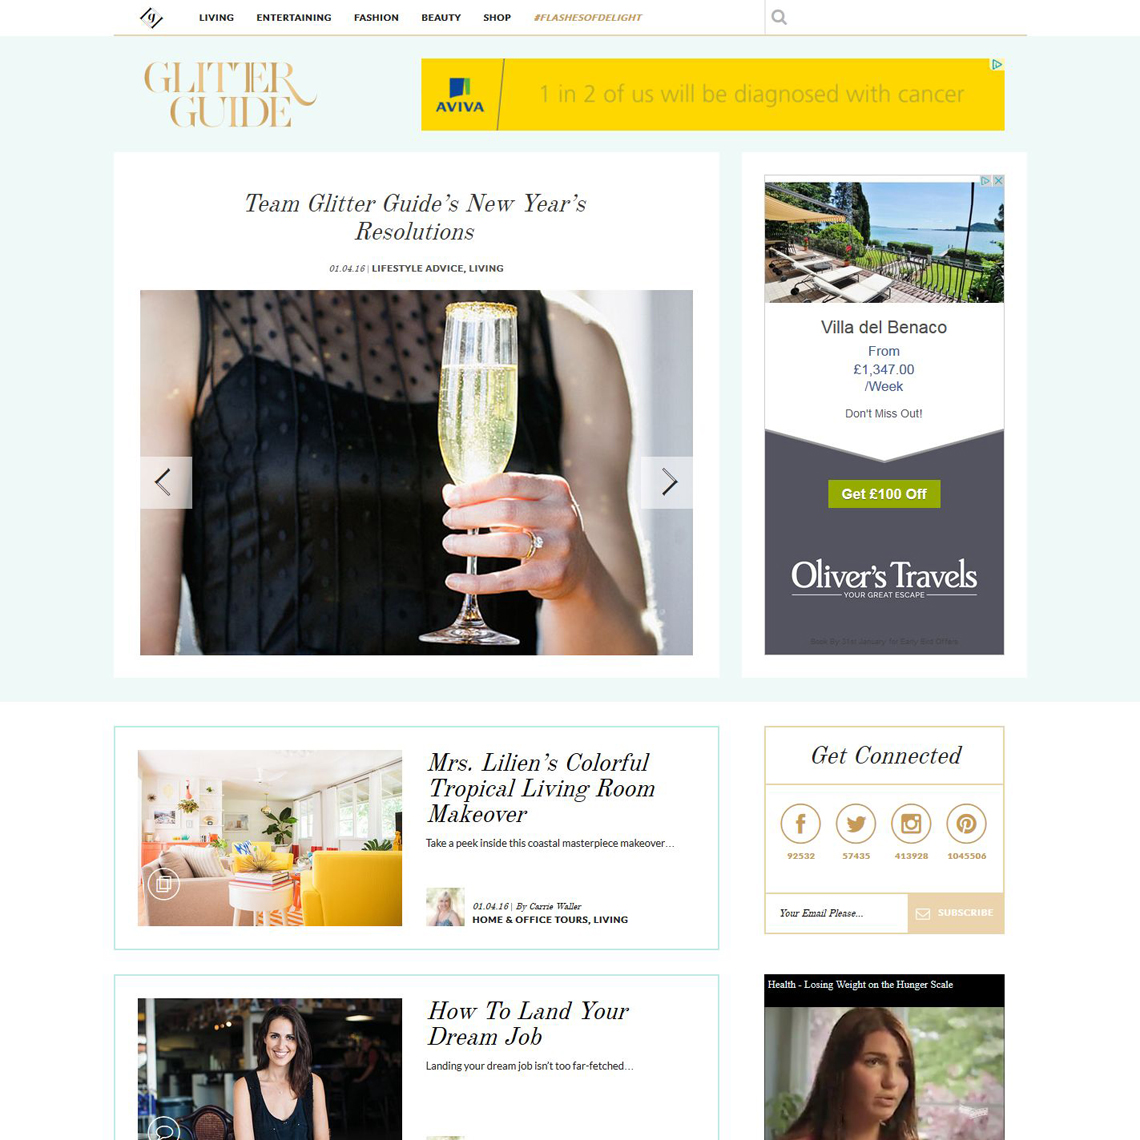 bloved-lifestyle-blog-top-10-style-blogs-2016-the-glitter-guide